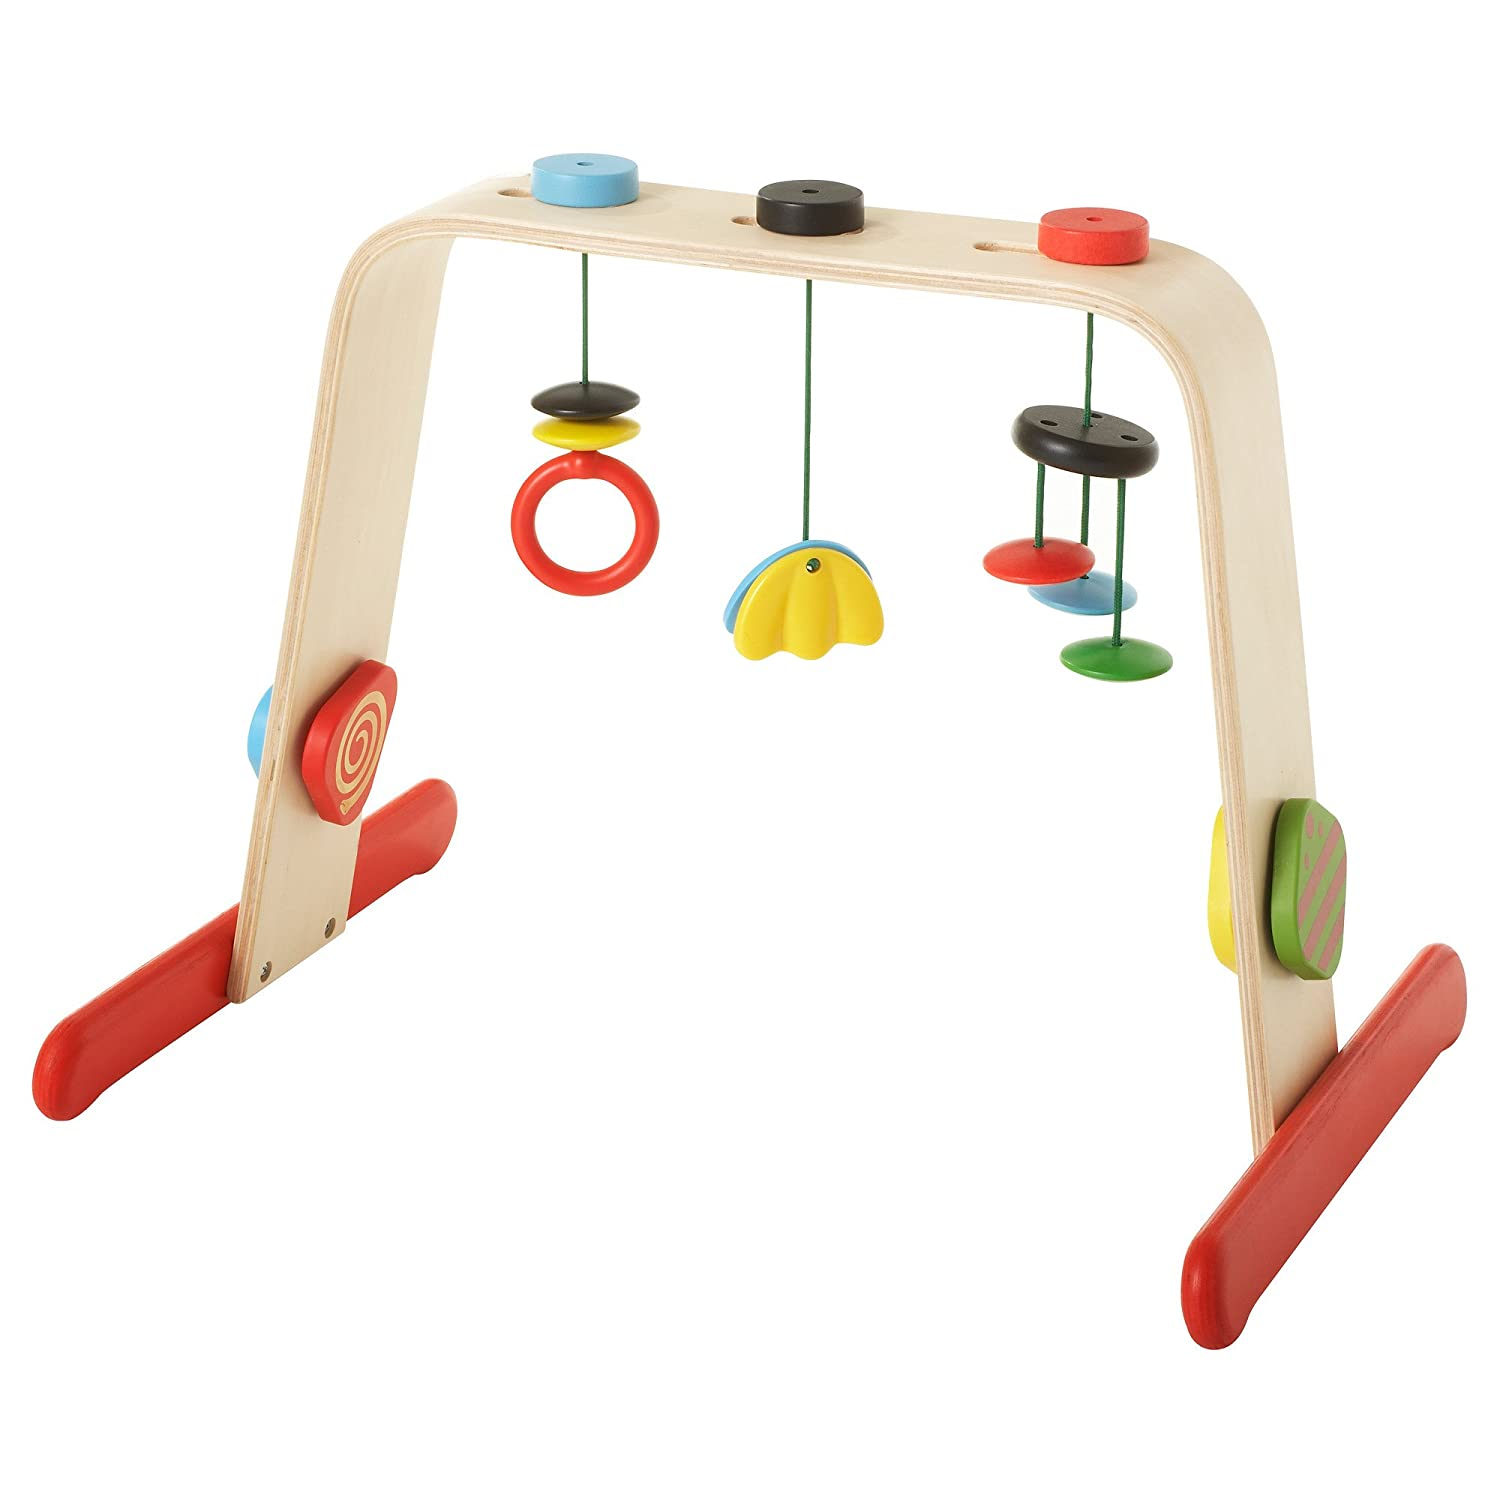 Symboat Baby Activity Playing Fitness Equipment Wooden Pull Ring Frame Multi-Stand Toddler Educational Toy